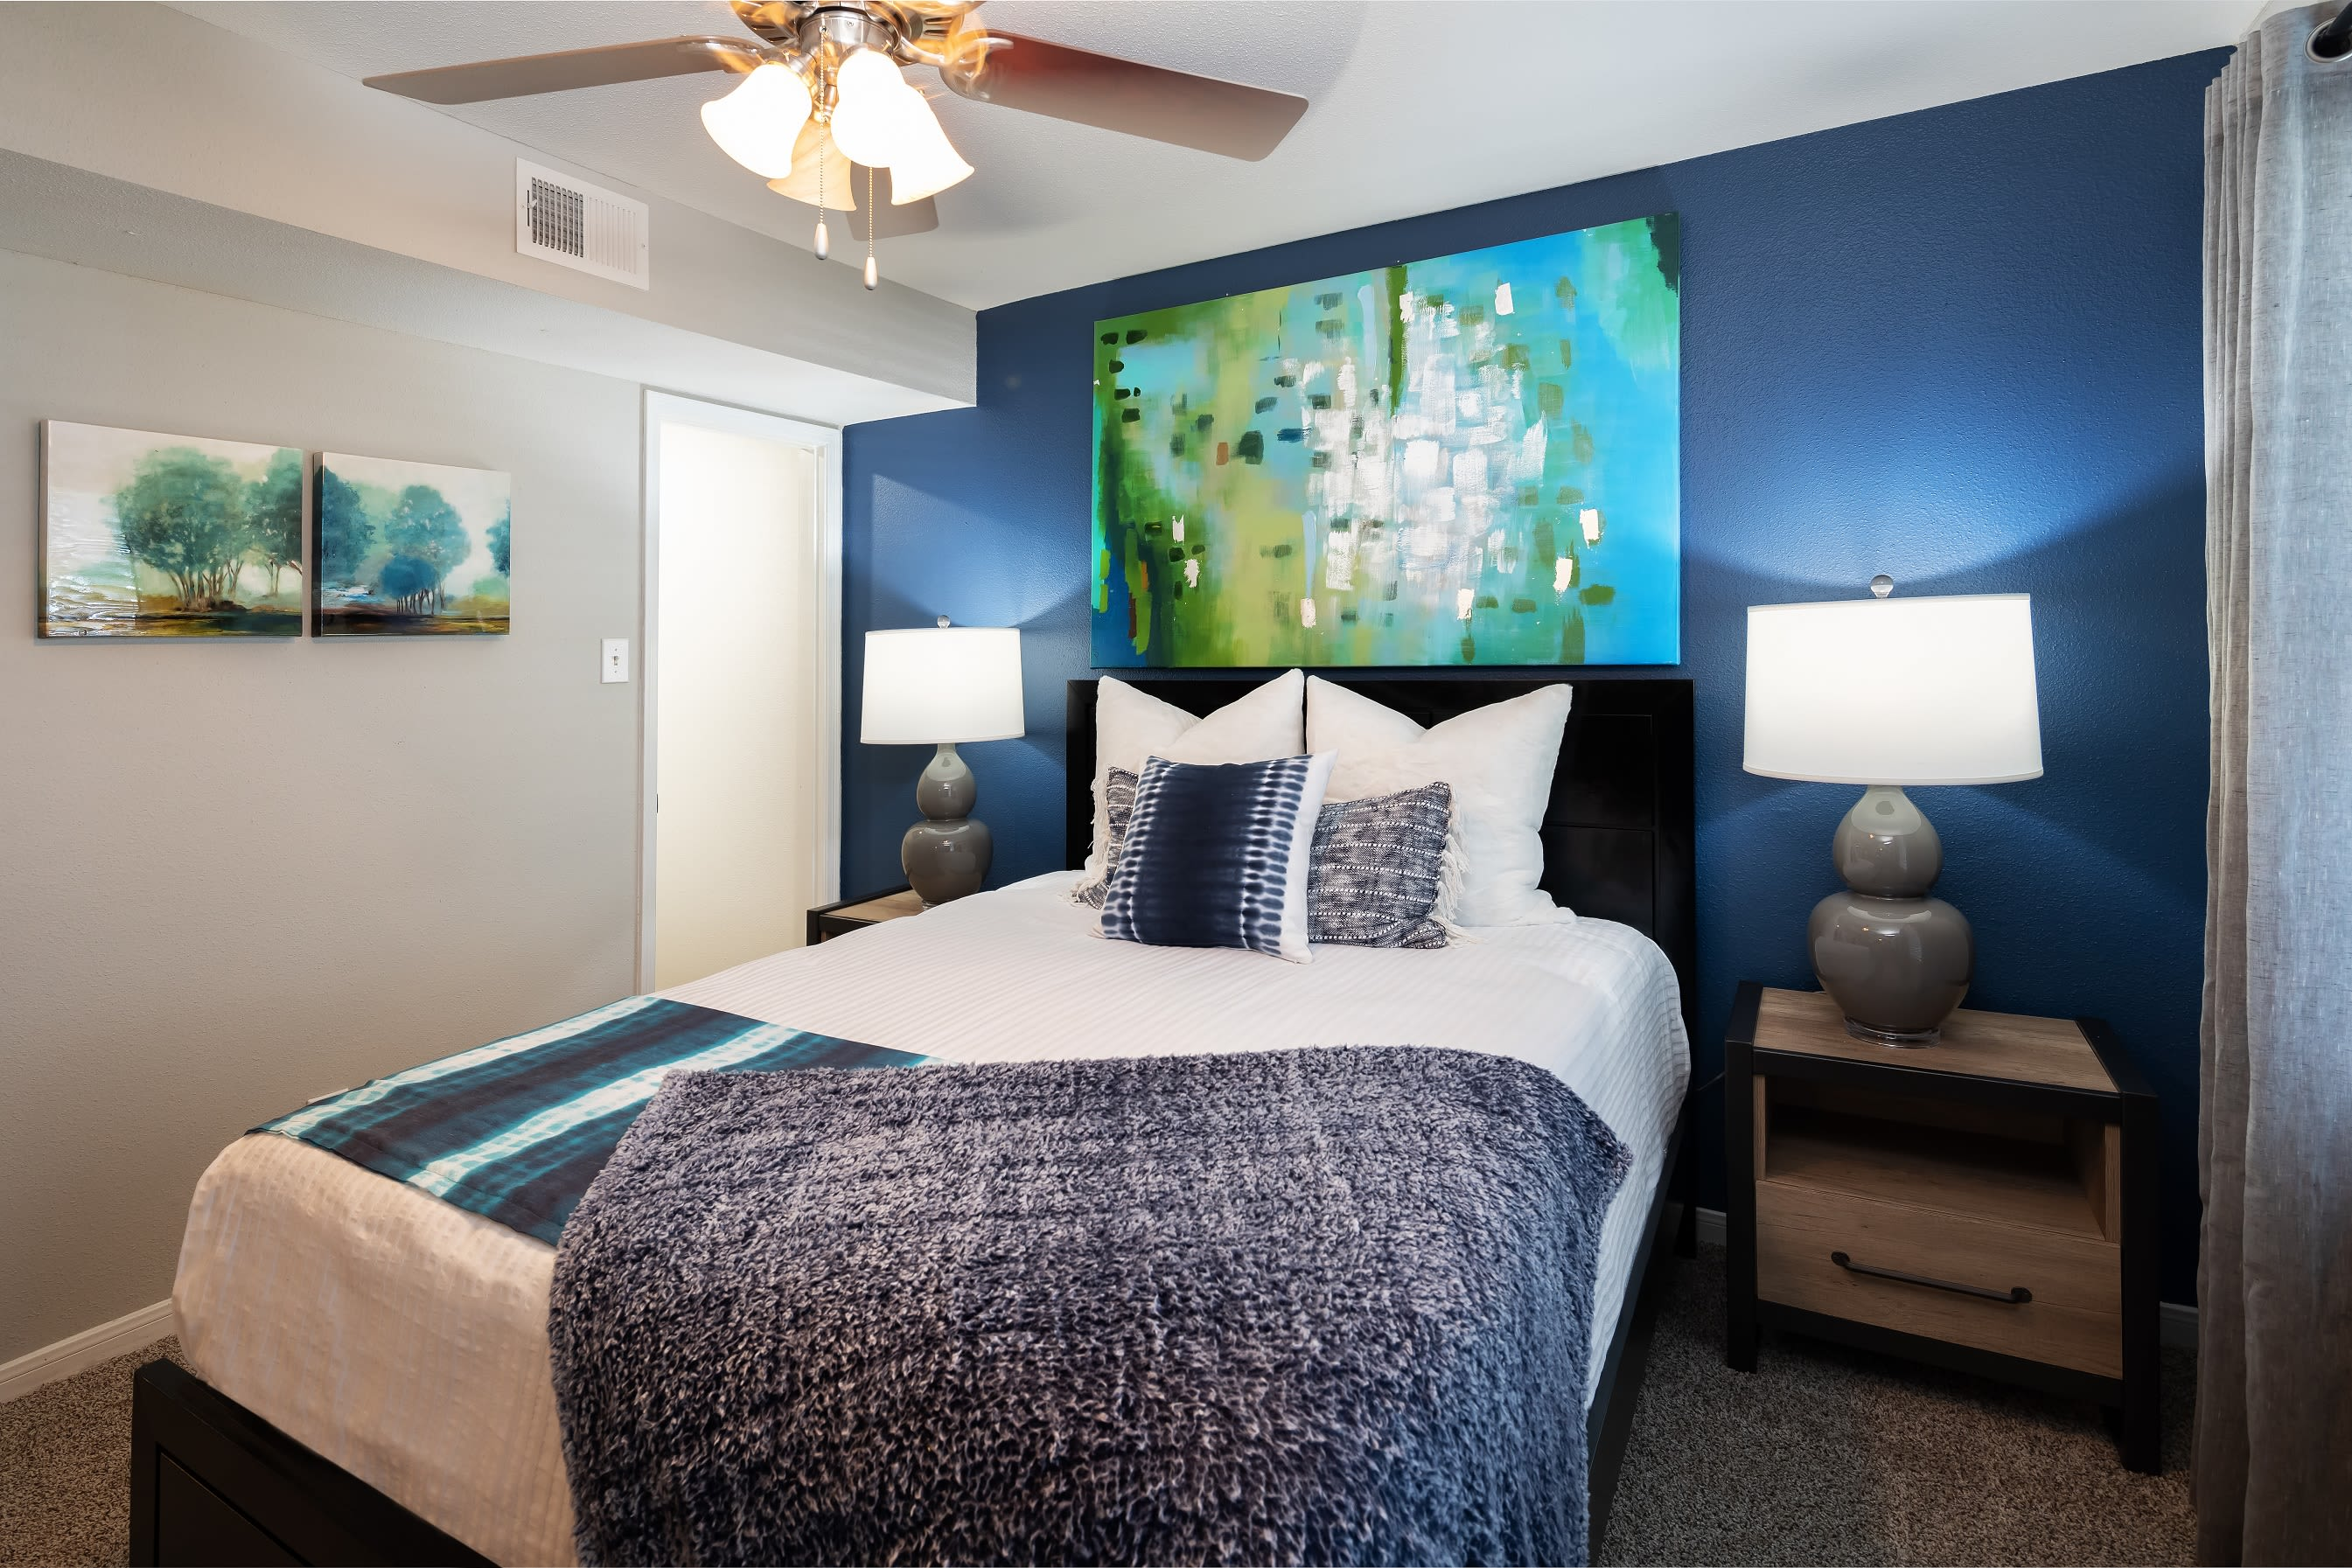 Guest bedroom with ceiling fan at Hayden at Enclave in Houston, Texas